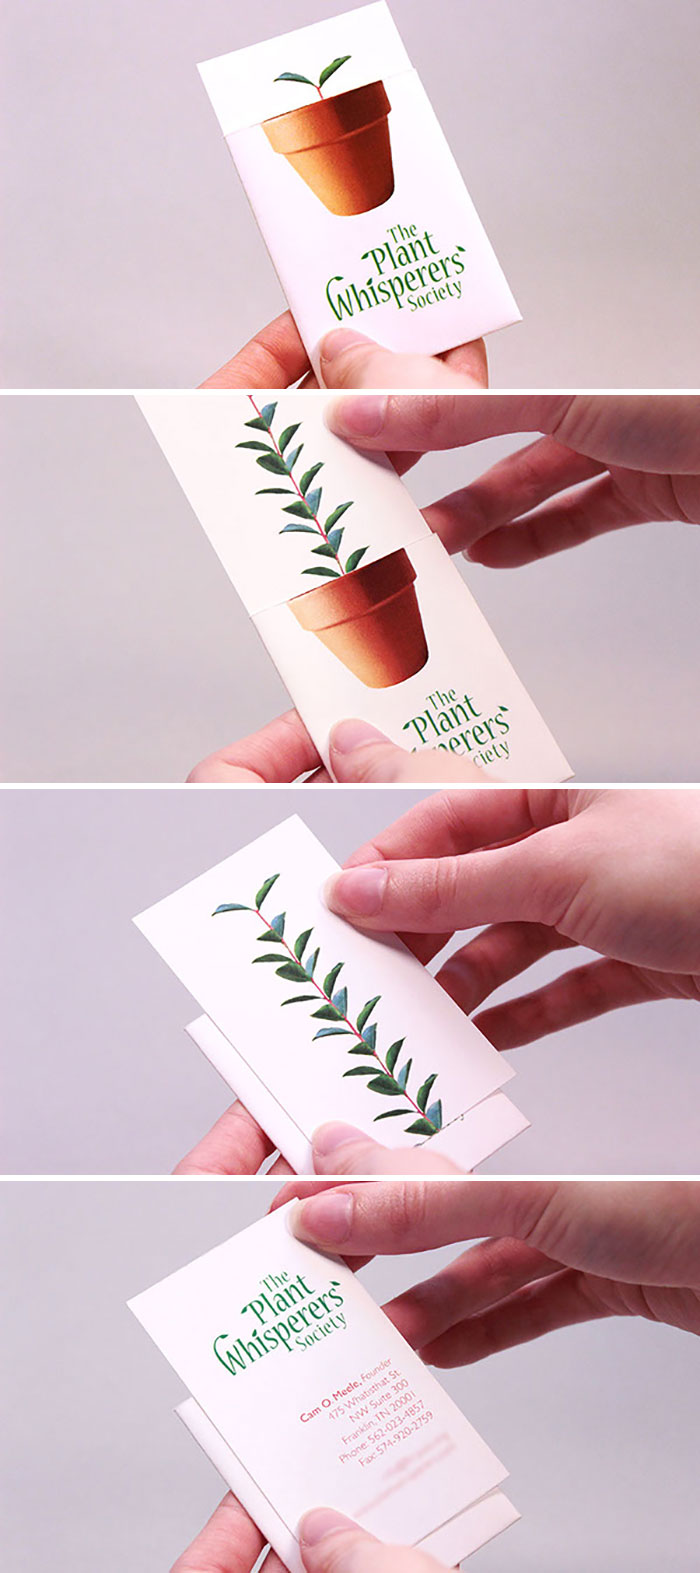 Simple And Unique Business Card Design For The Plant Whisperers Society